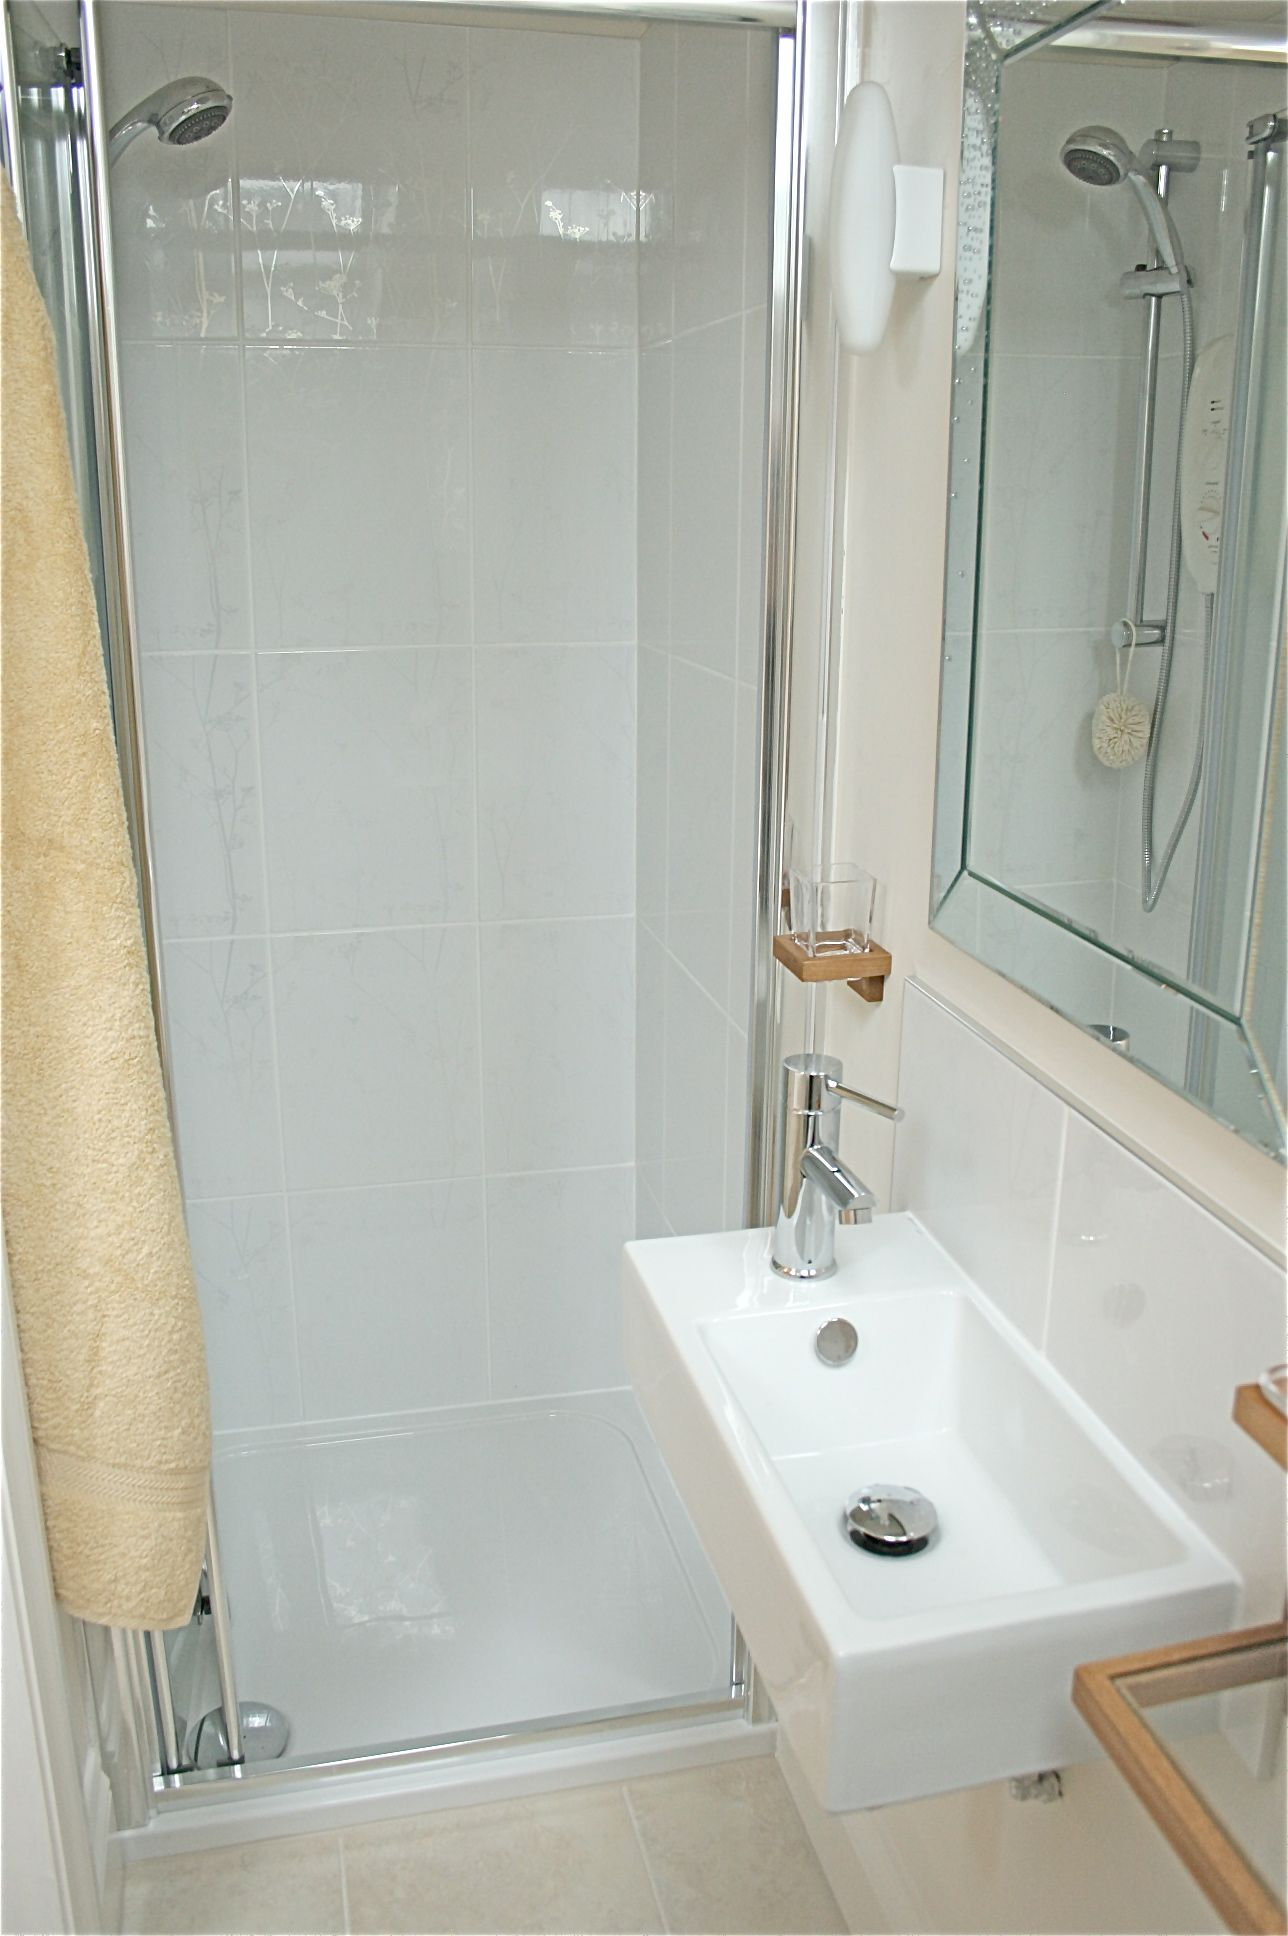 Very Small Bathroom Arragement Idea With Narrow Shower And White Square  Sink Accessories Real Simple Bathroom